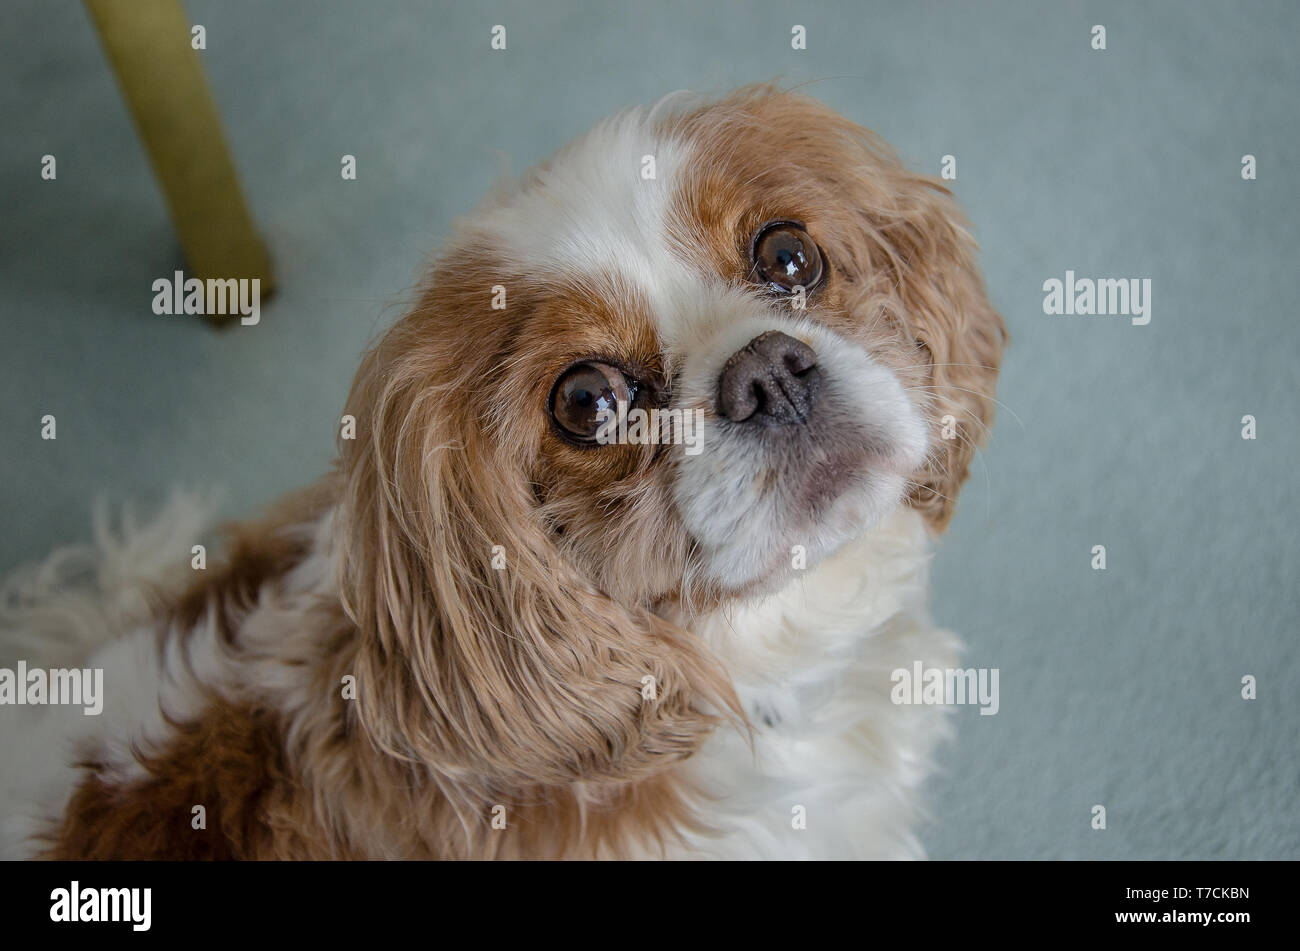 Cavalier King Charles Spaniel dog breed retains the sporty nature of his spaniel ancestors. Stock Photo